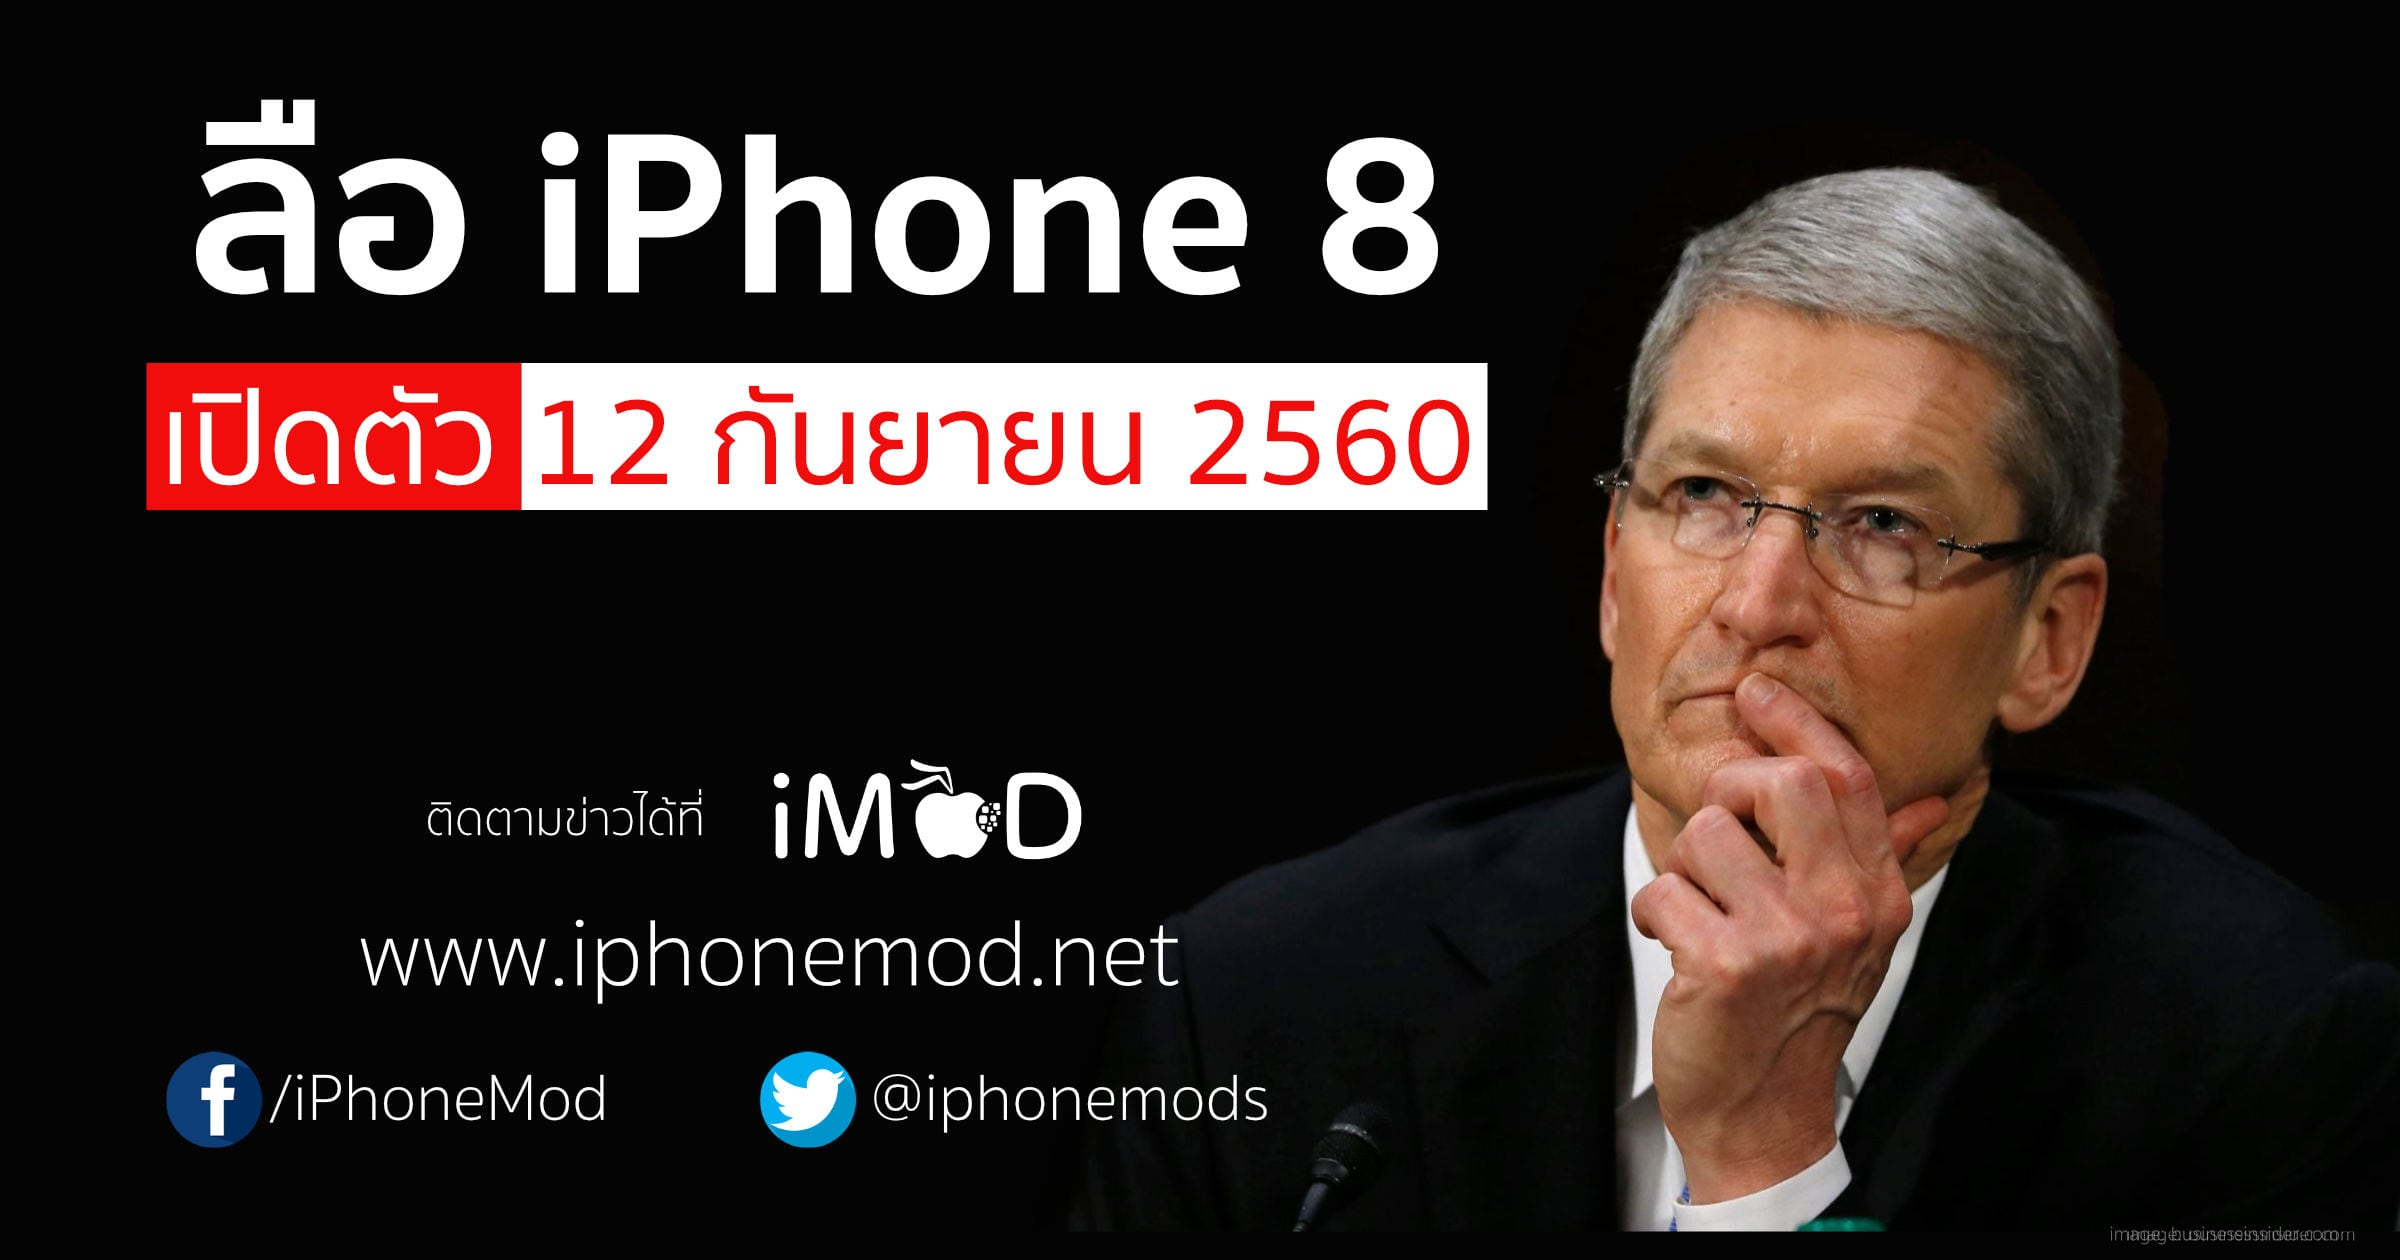 Iphone 8 Event Rumors